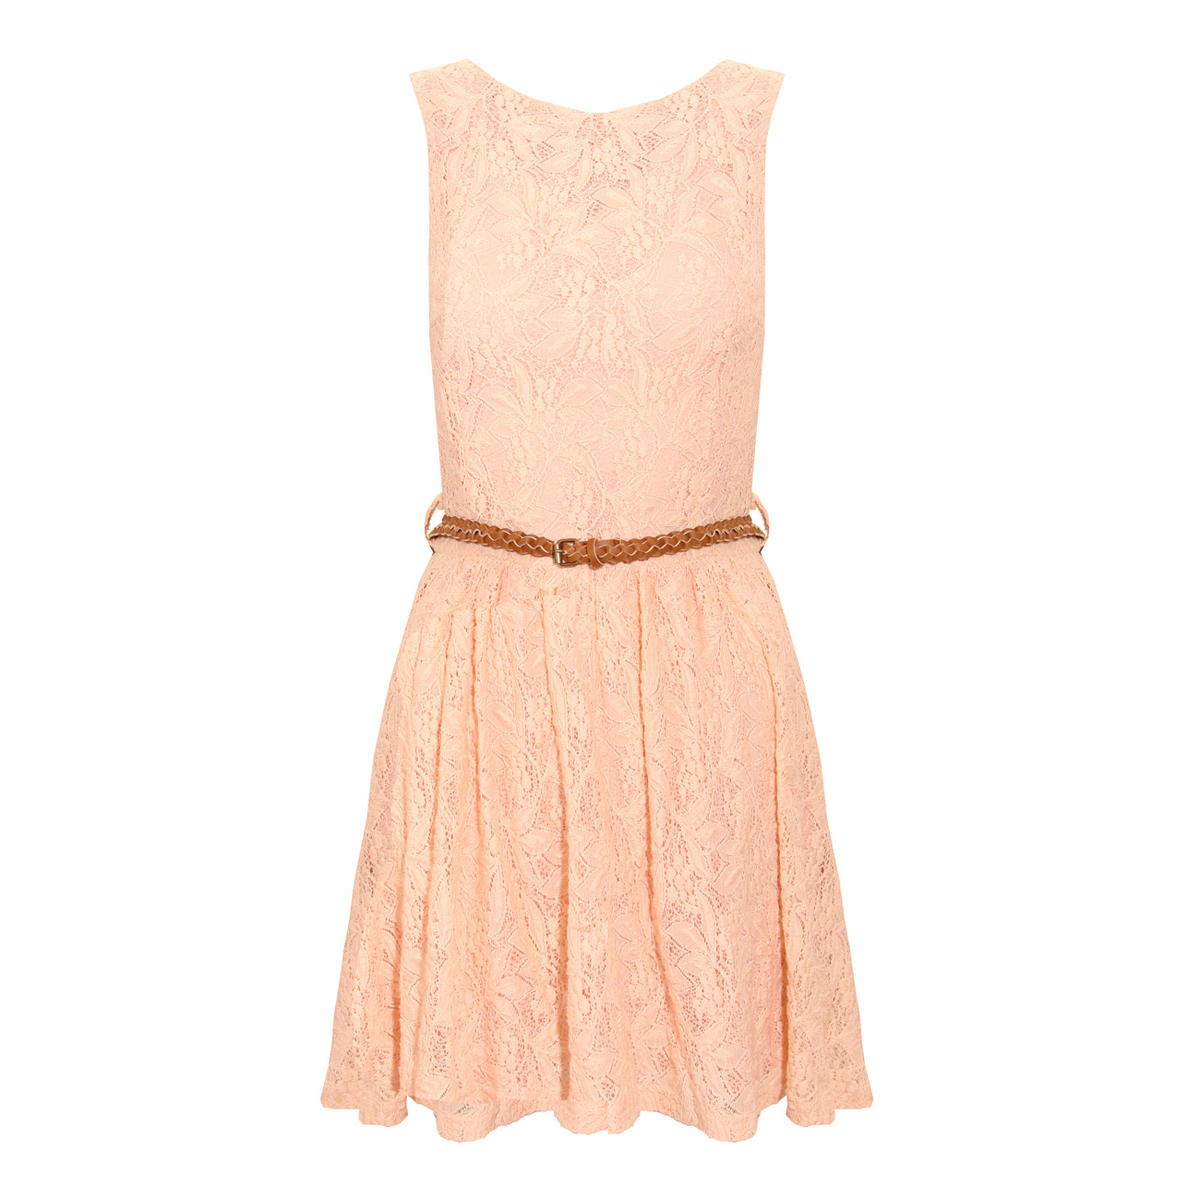 Nude Tailored Lace Pleat Dress  Preview